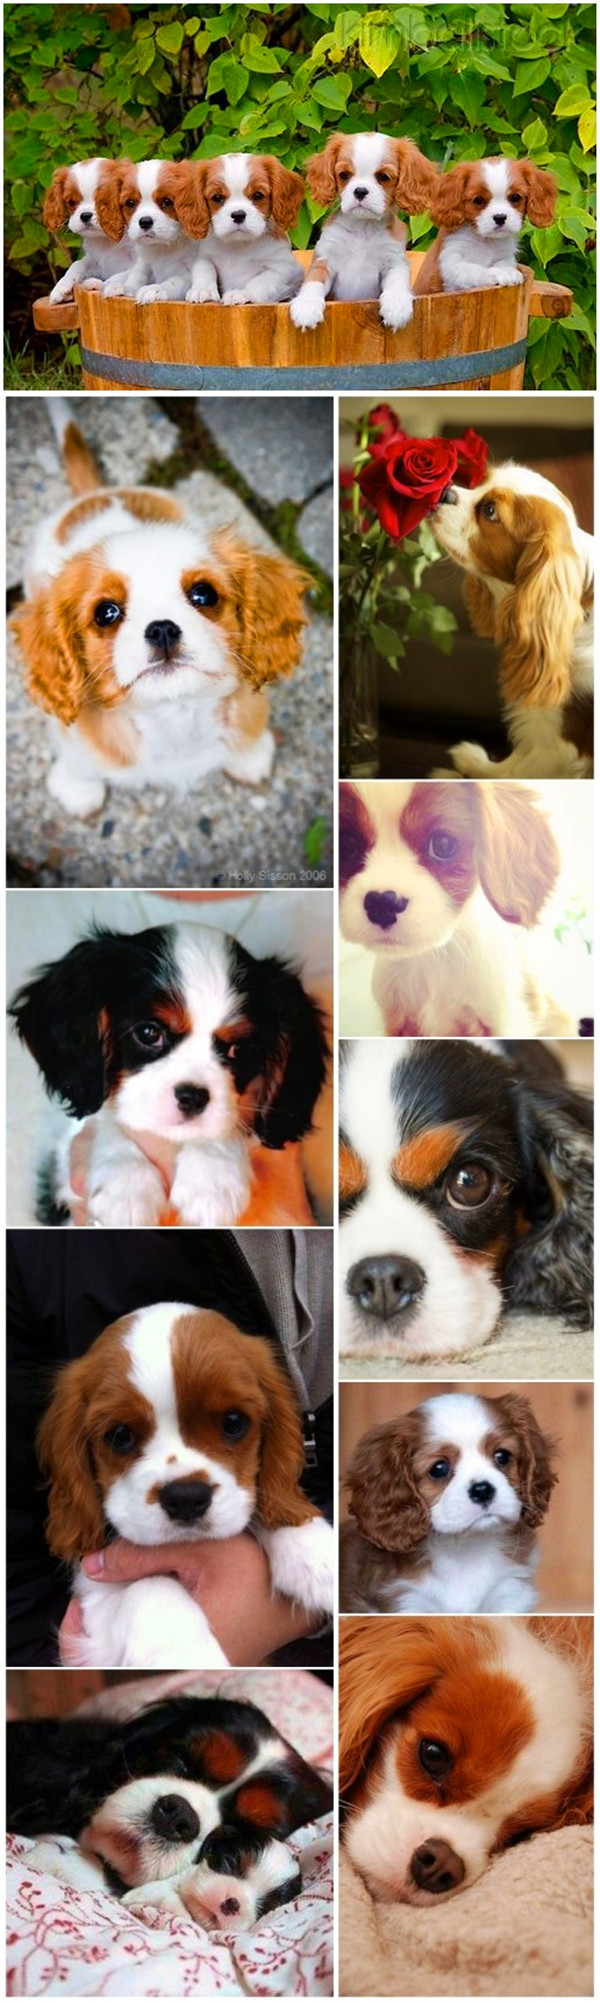 Cute small dog breeds 2 Cavalier King Charles Spaniel with puppies